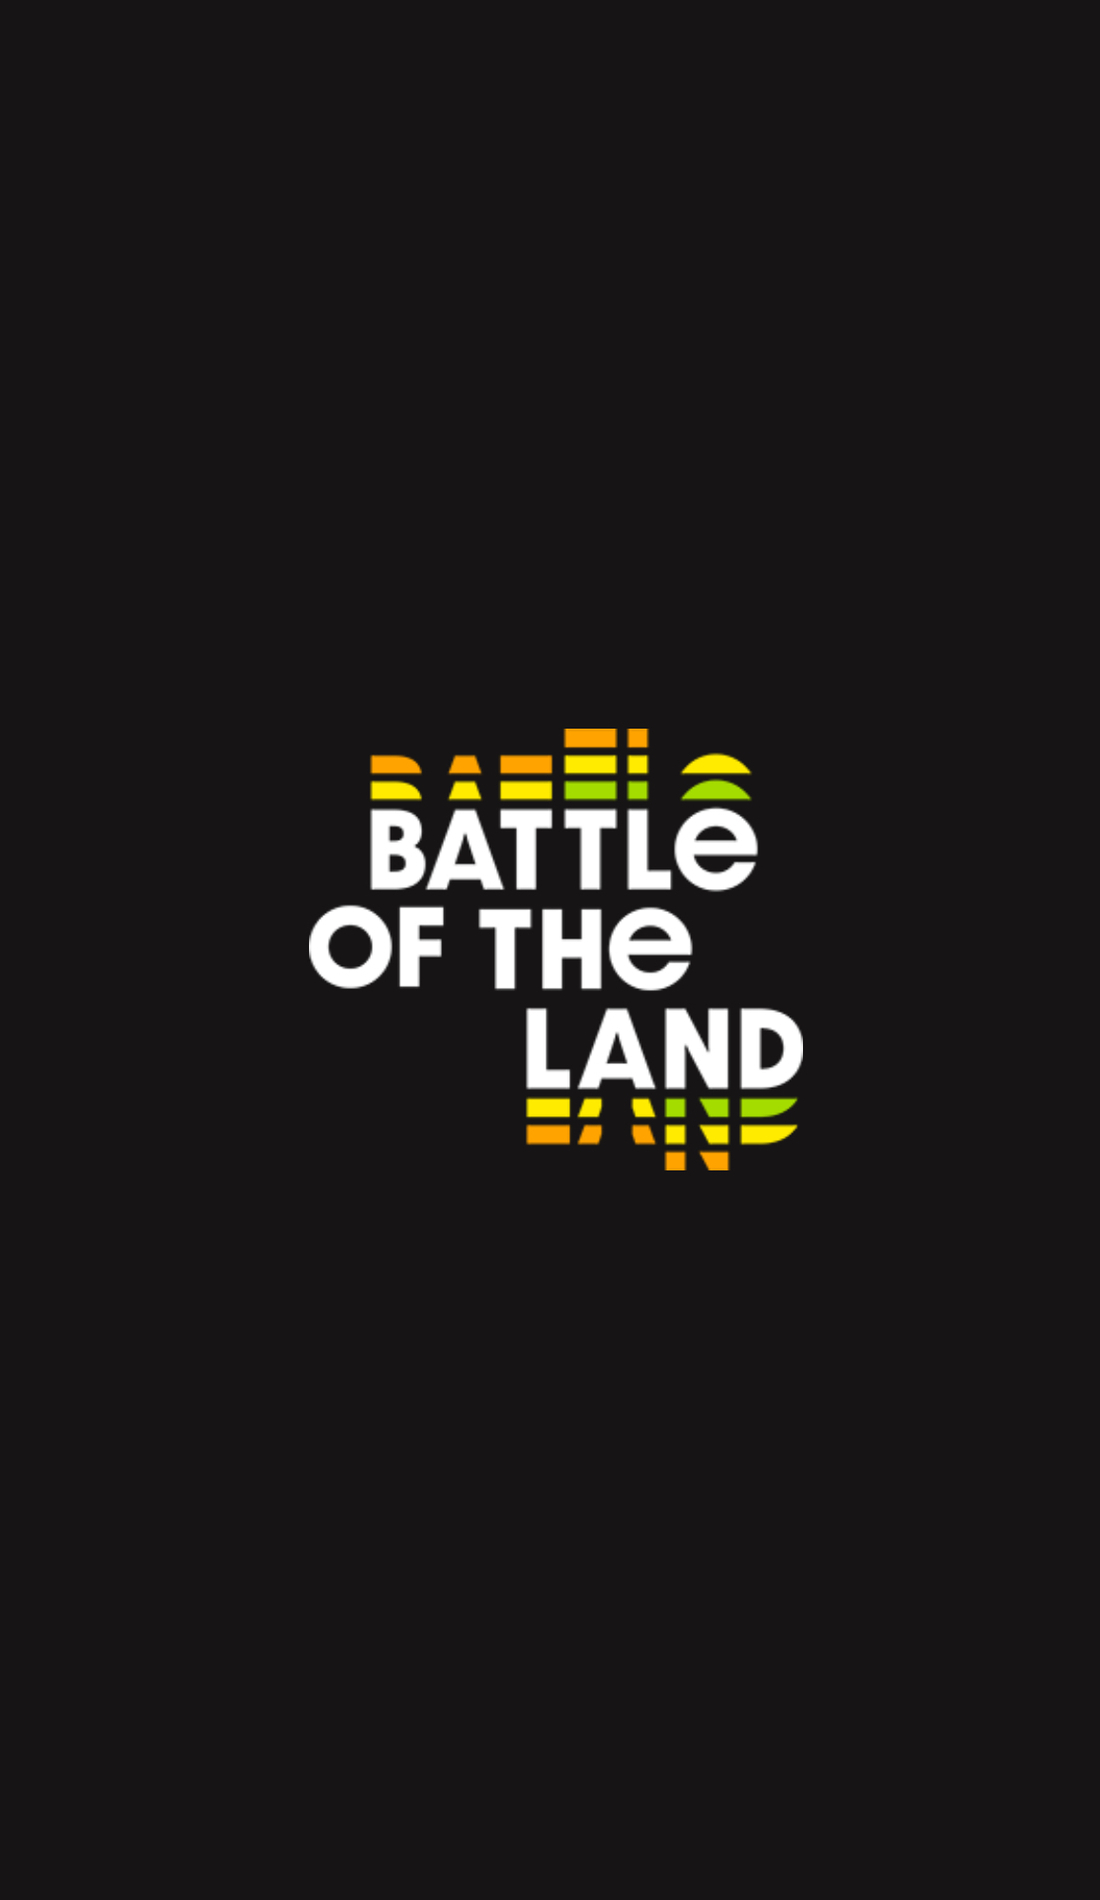 A Battle of the Land live event